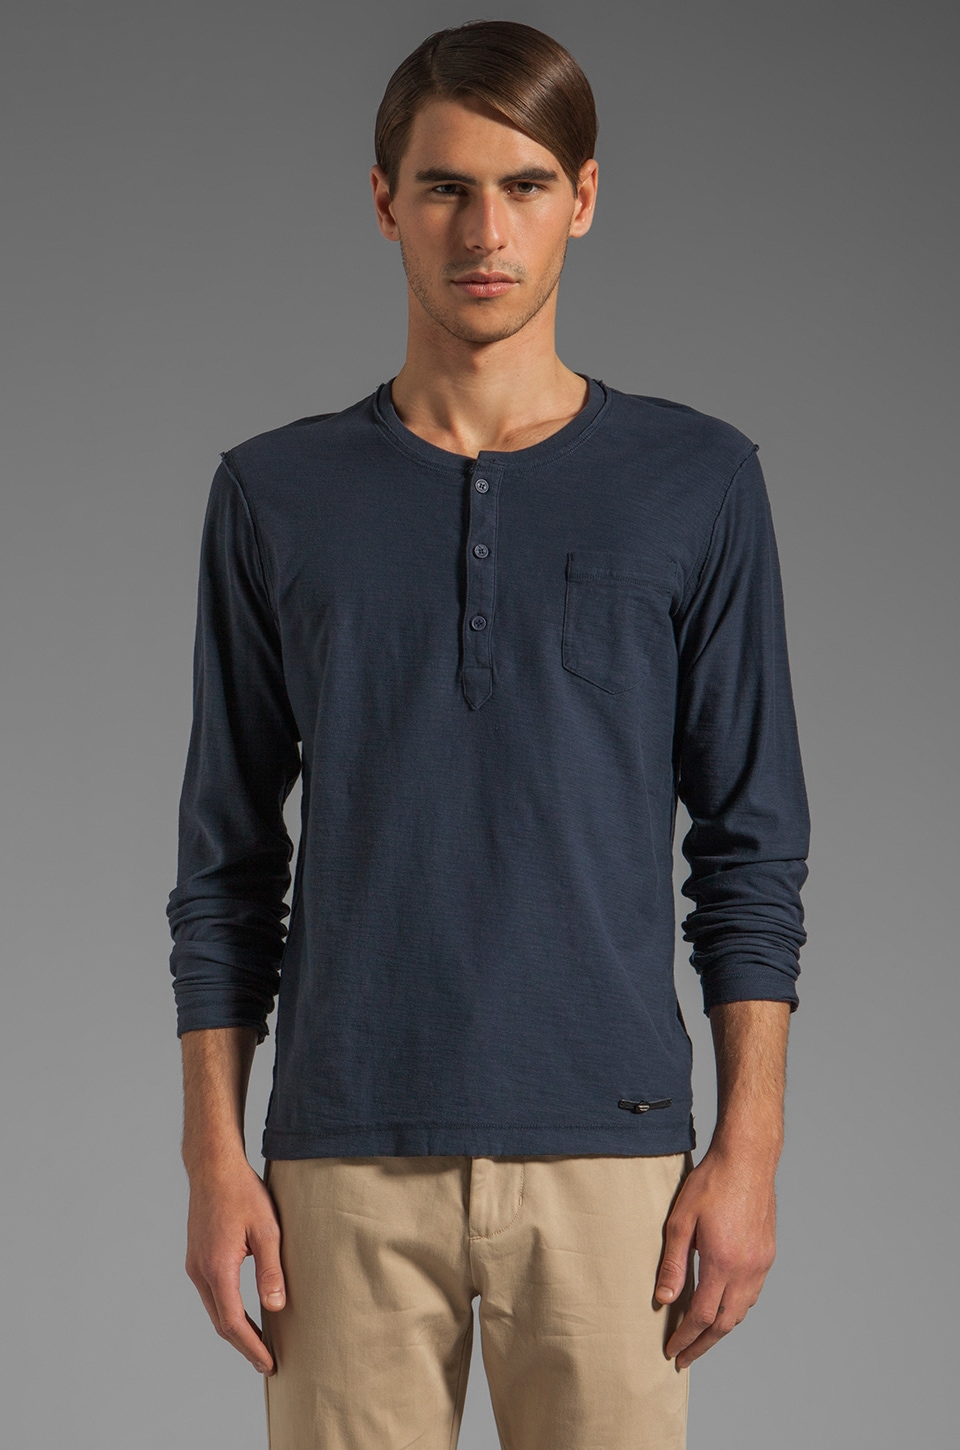 Diesel Canopy Long Sleeve Henley in Navy